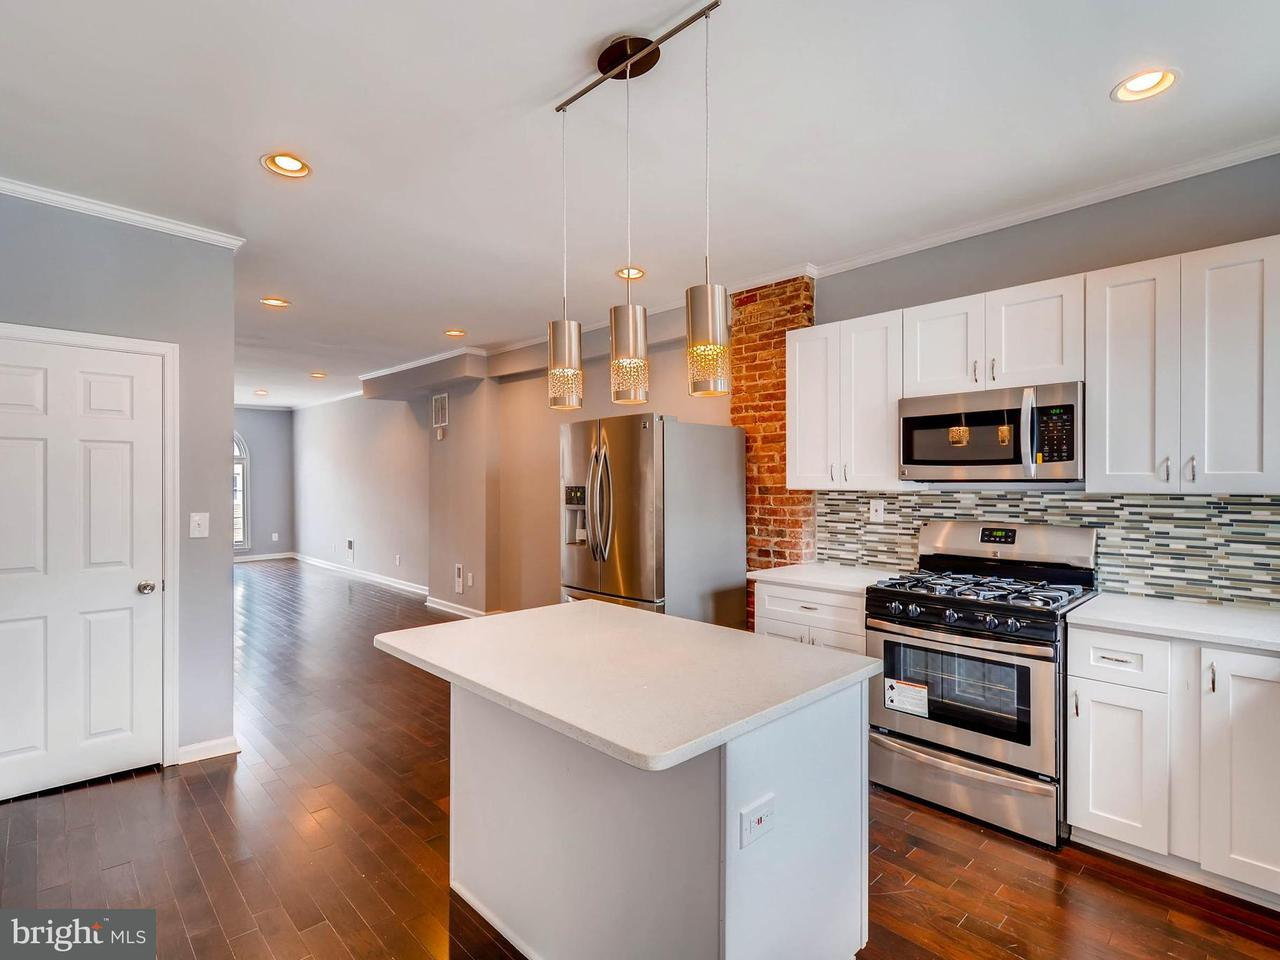 Single Family for Sale at 259 East Ave S Baltimore, Maryland 21224 United States